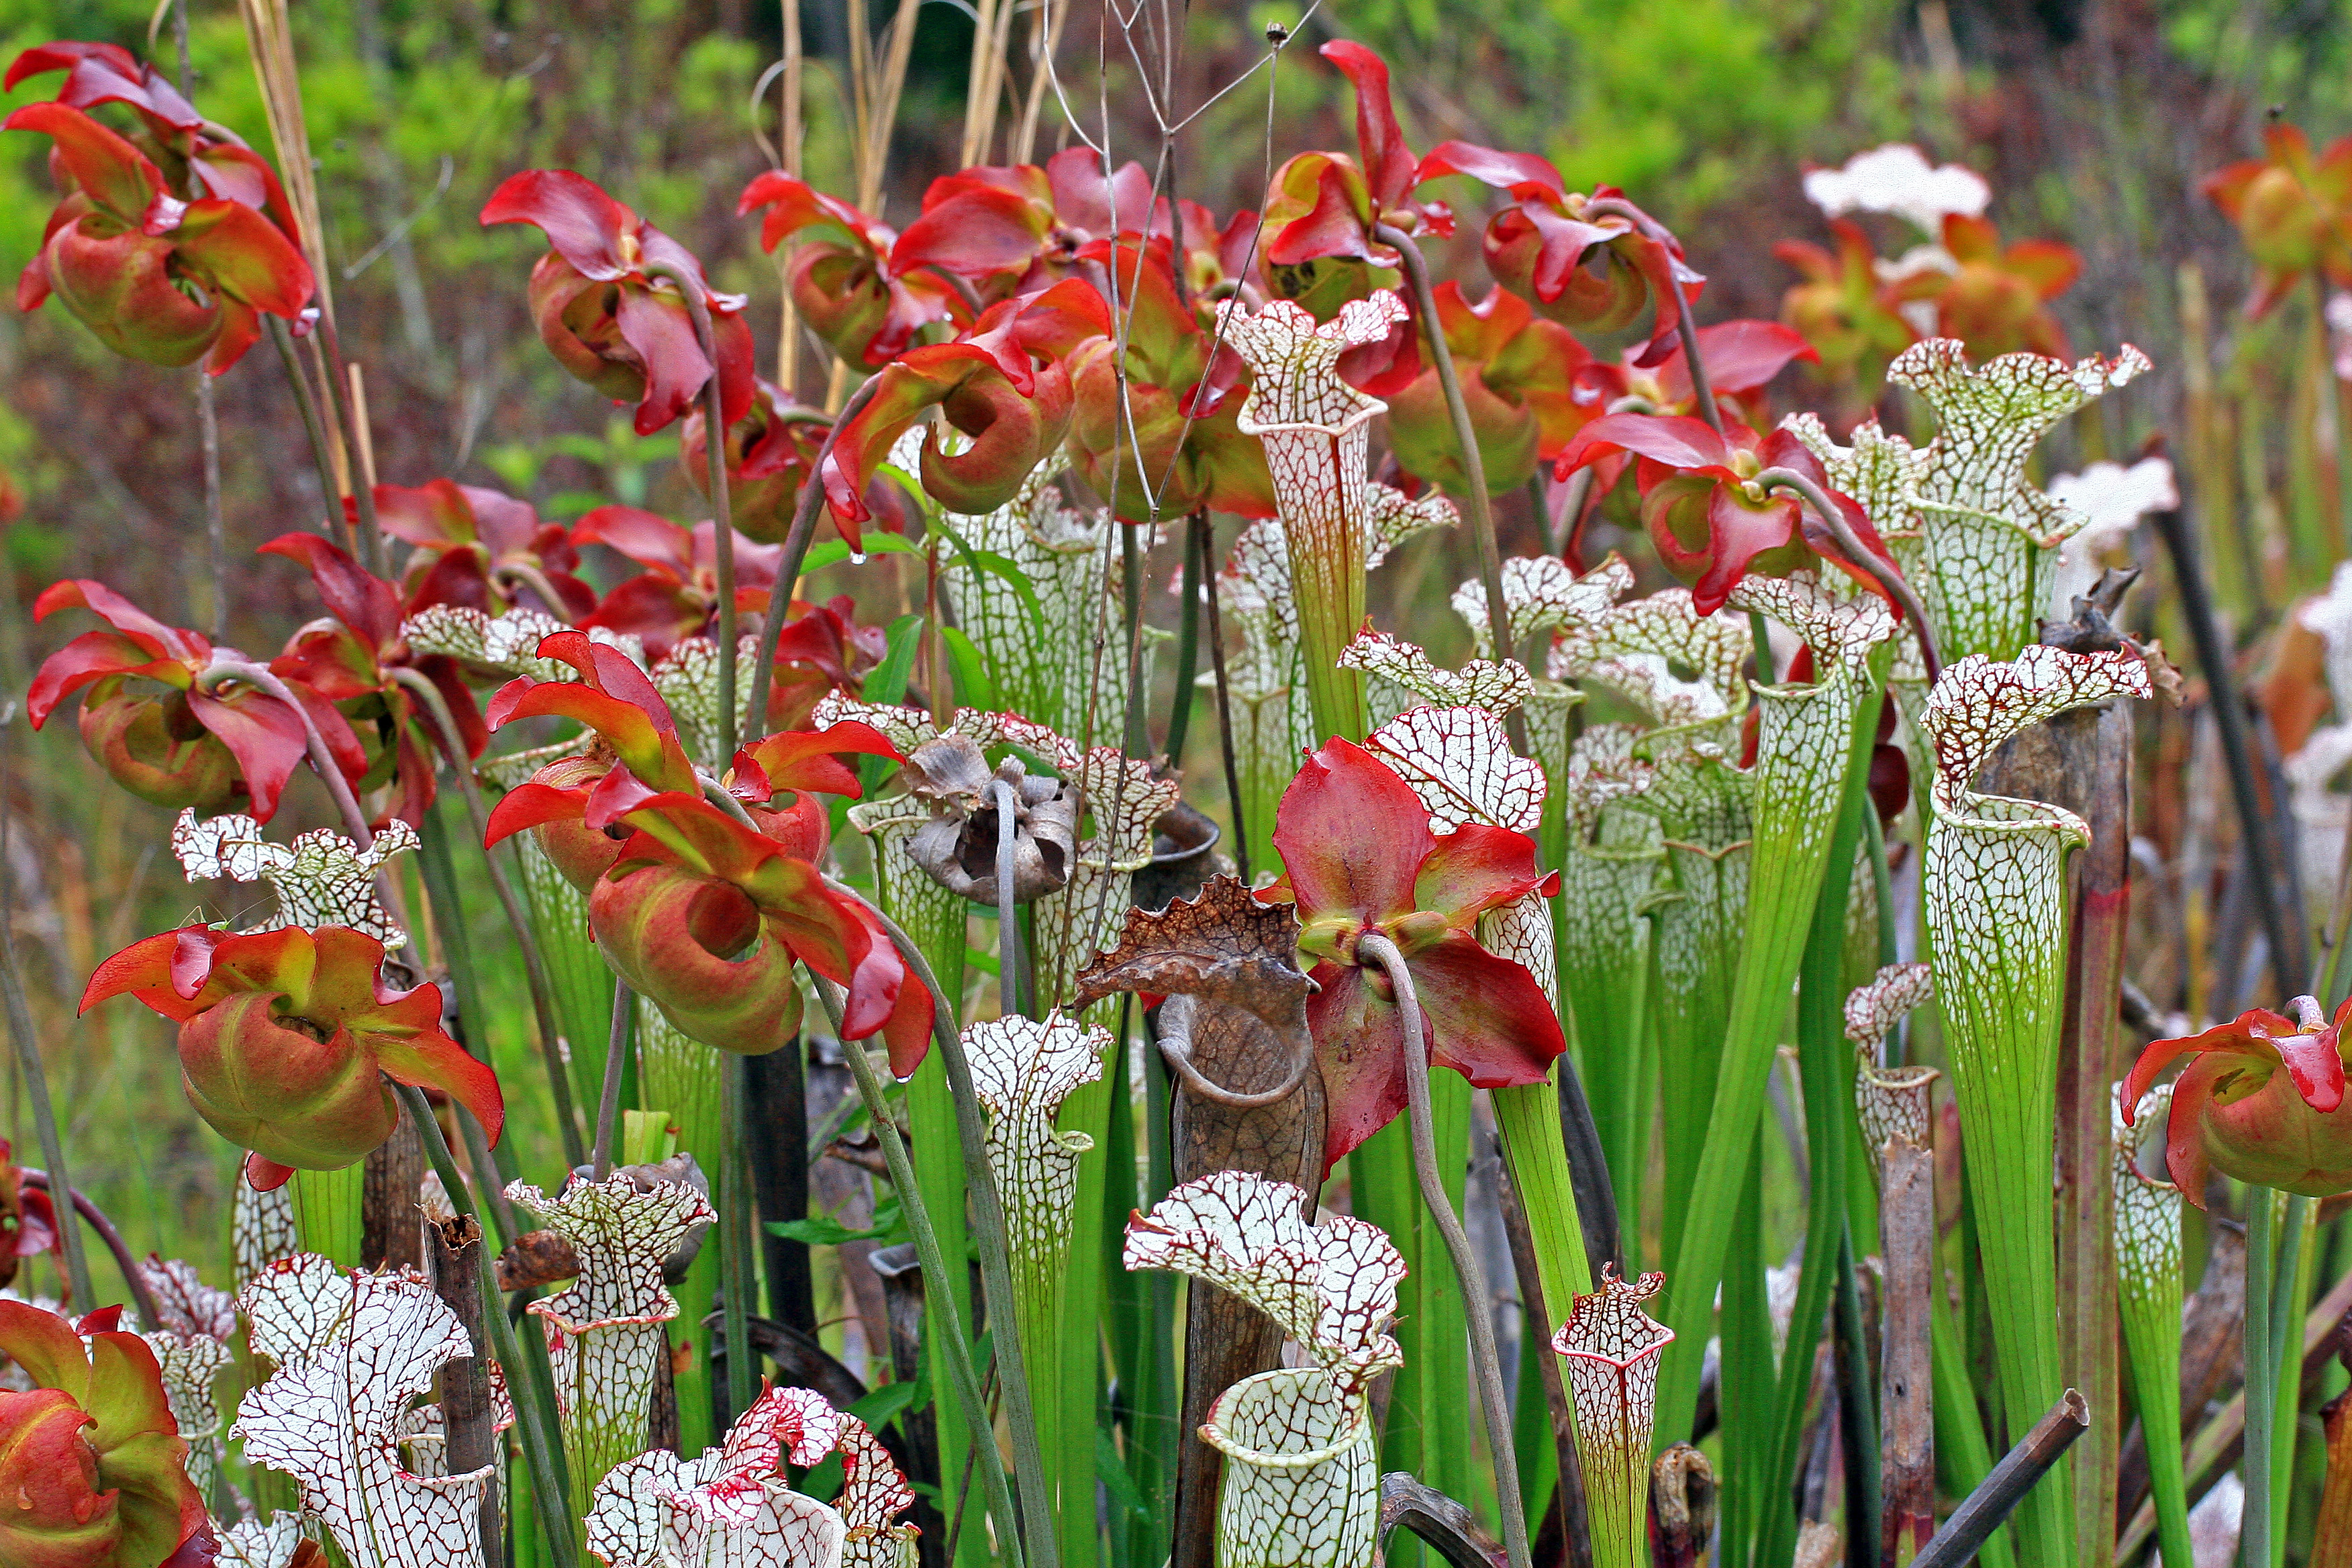 ha white topped pitcher plants high resolution HD Wallpaper of Flowers 3504x2336